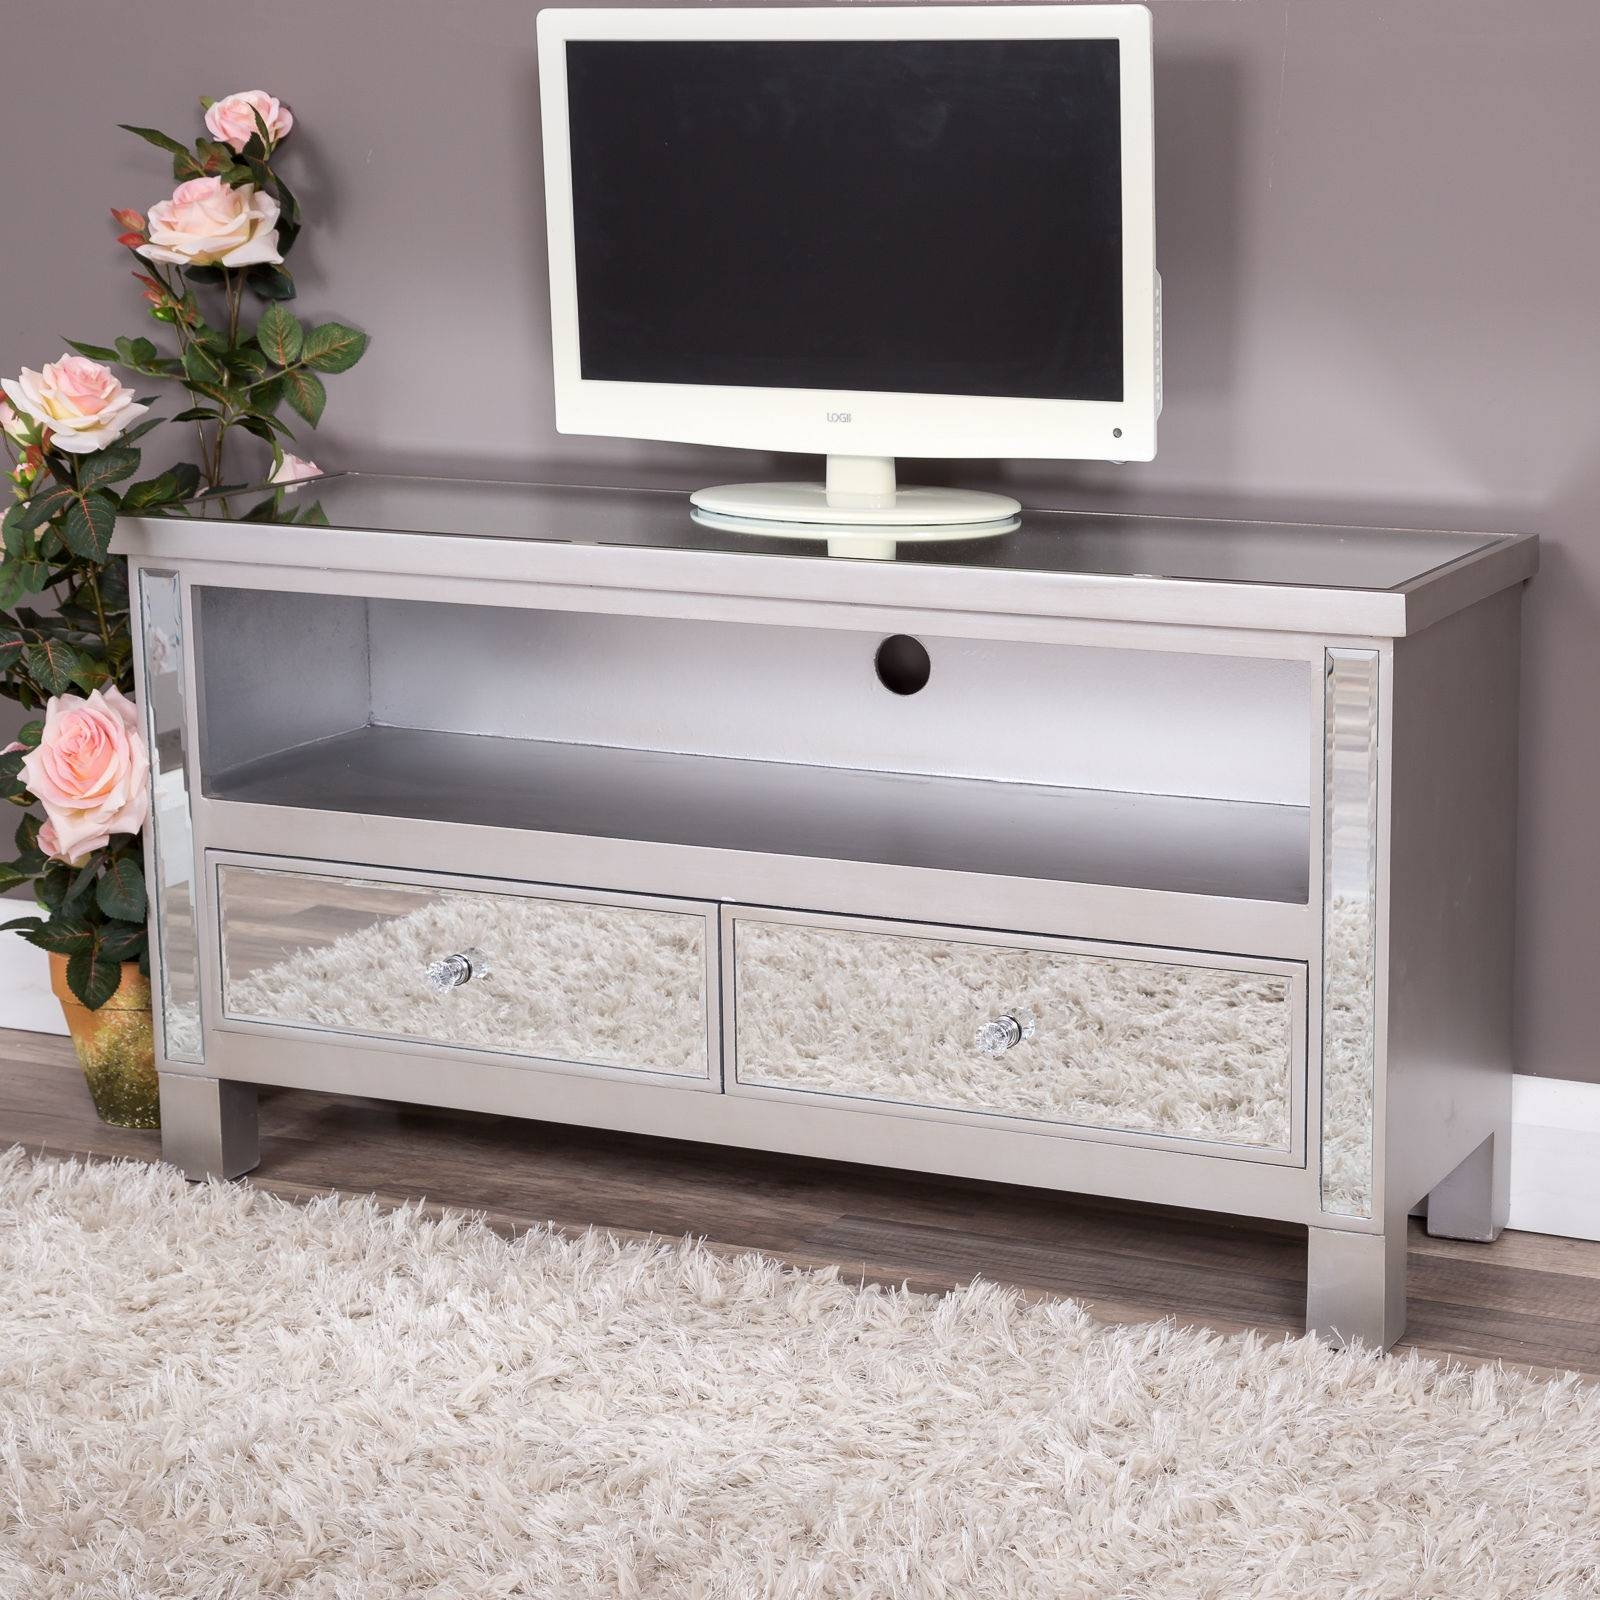 Silver Mirrored Glass 2 Drawer Tv Entertainment Cabinet Stand Unit pertaining to Mirrored Tv Stands (Image 13 of 15)